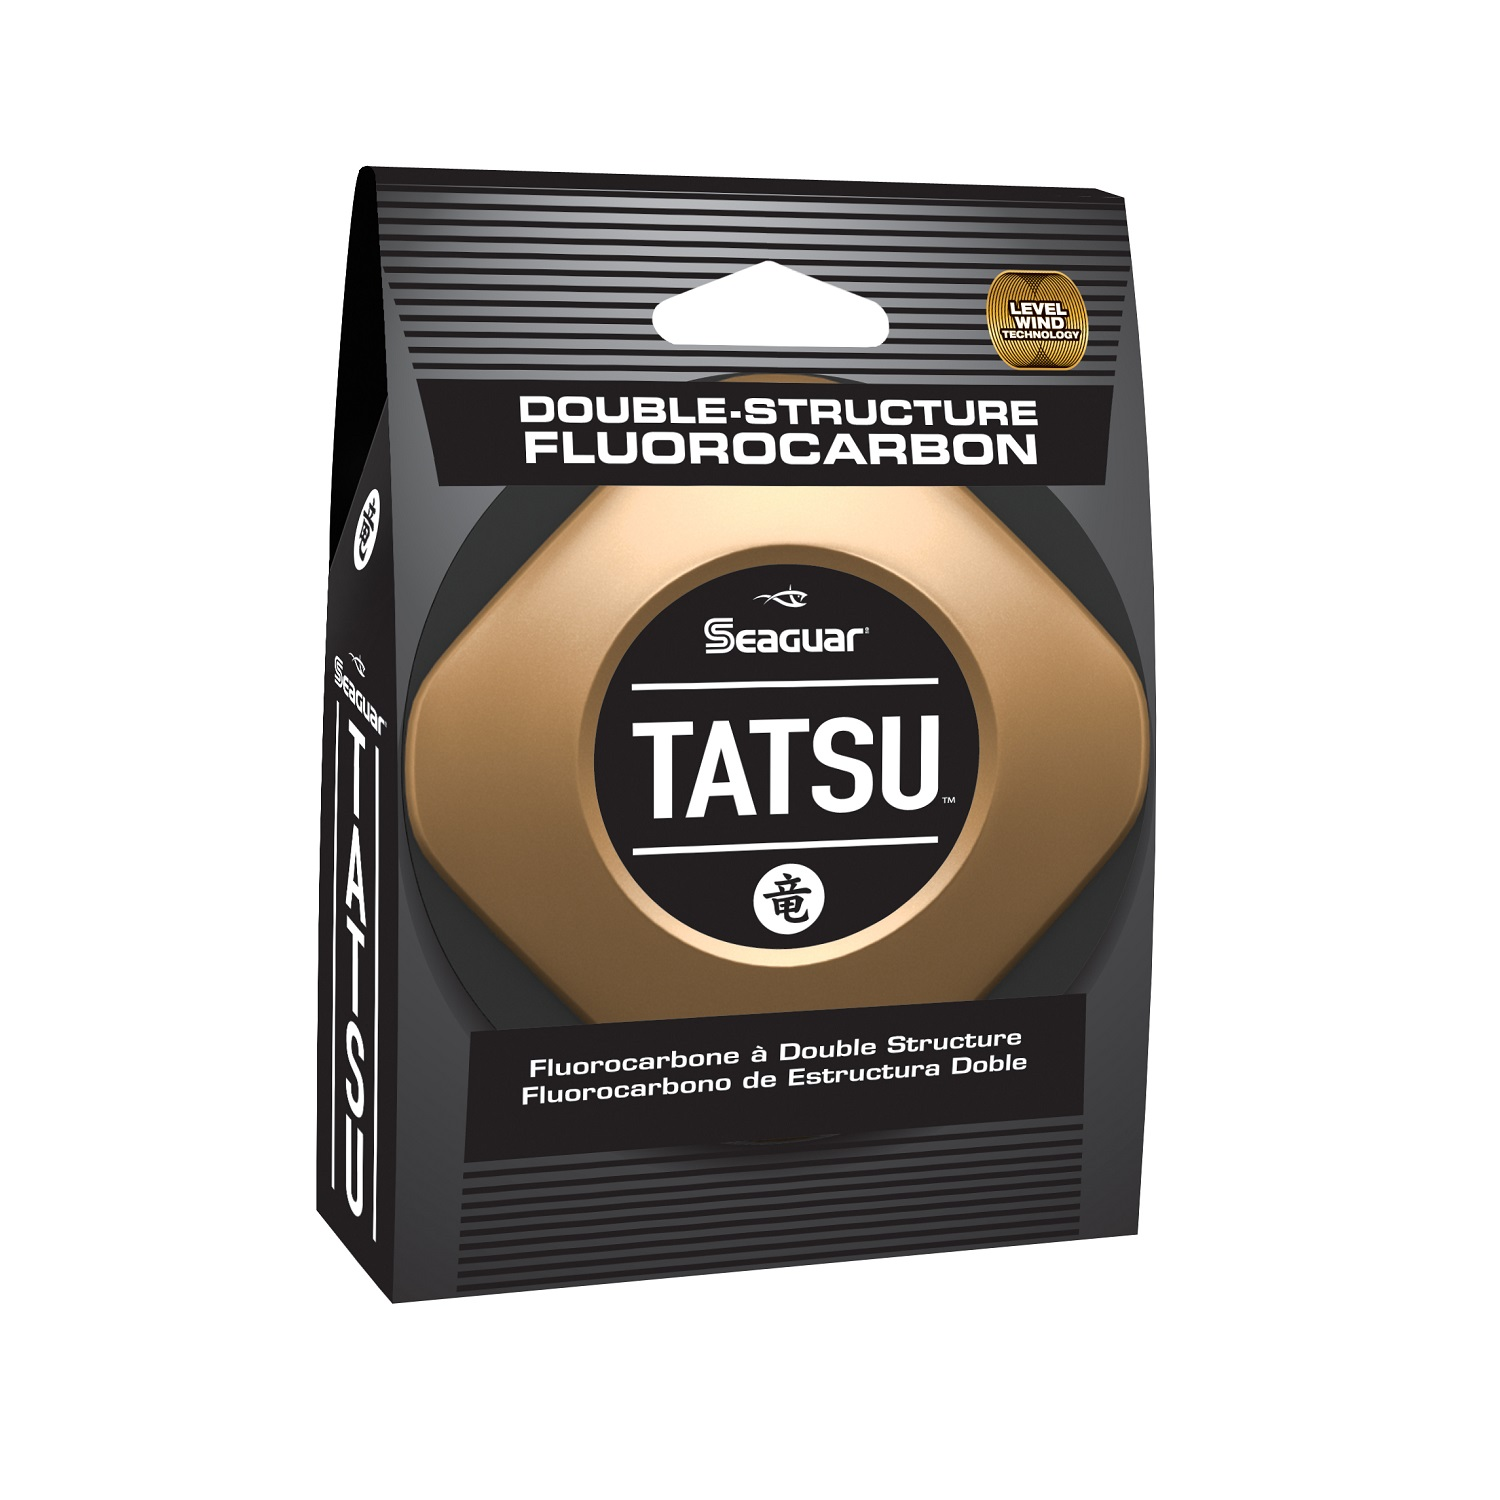 Seaguar Tatsu Fishing Line 200 10LB by Supplier Generic